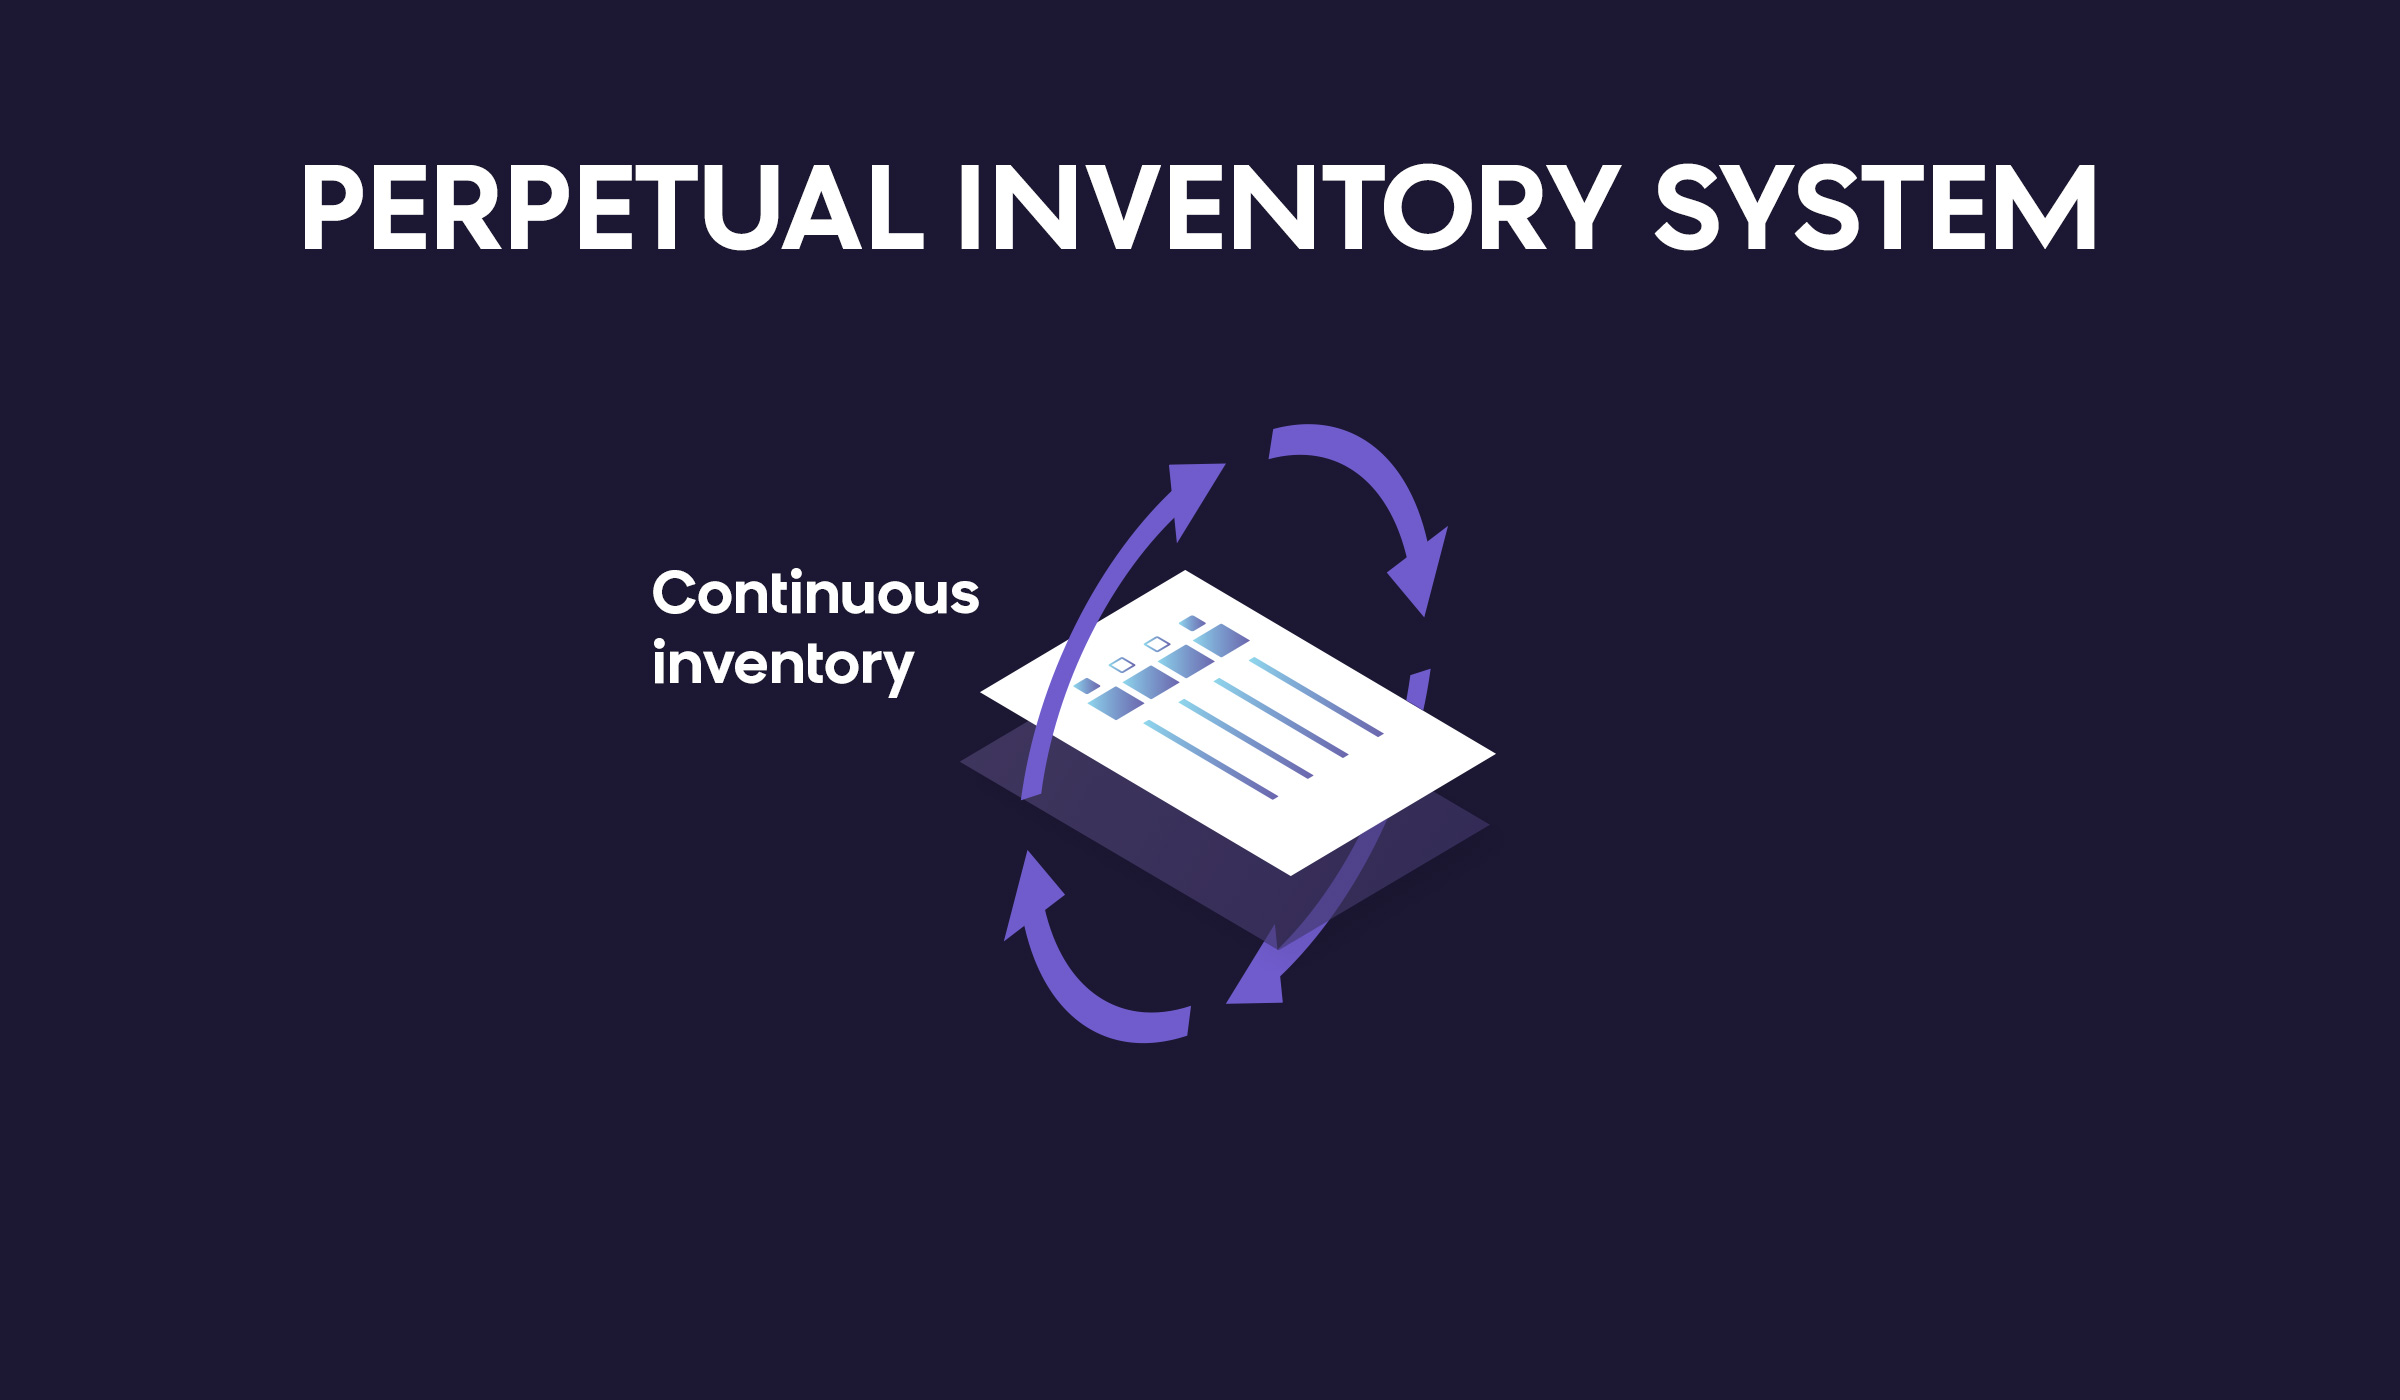 What is a perpetual inventory system?